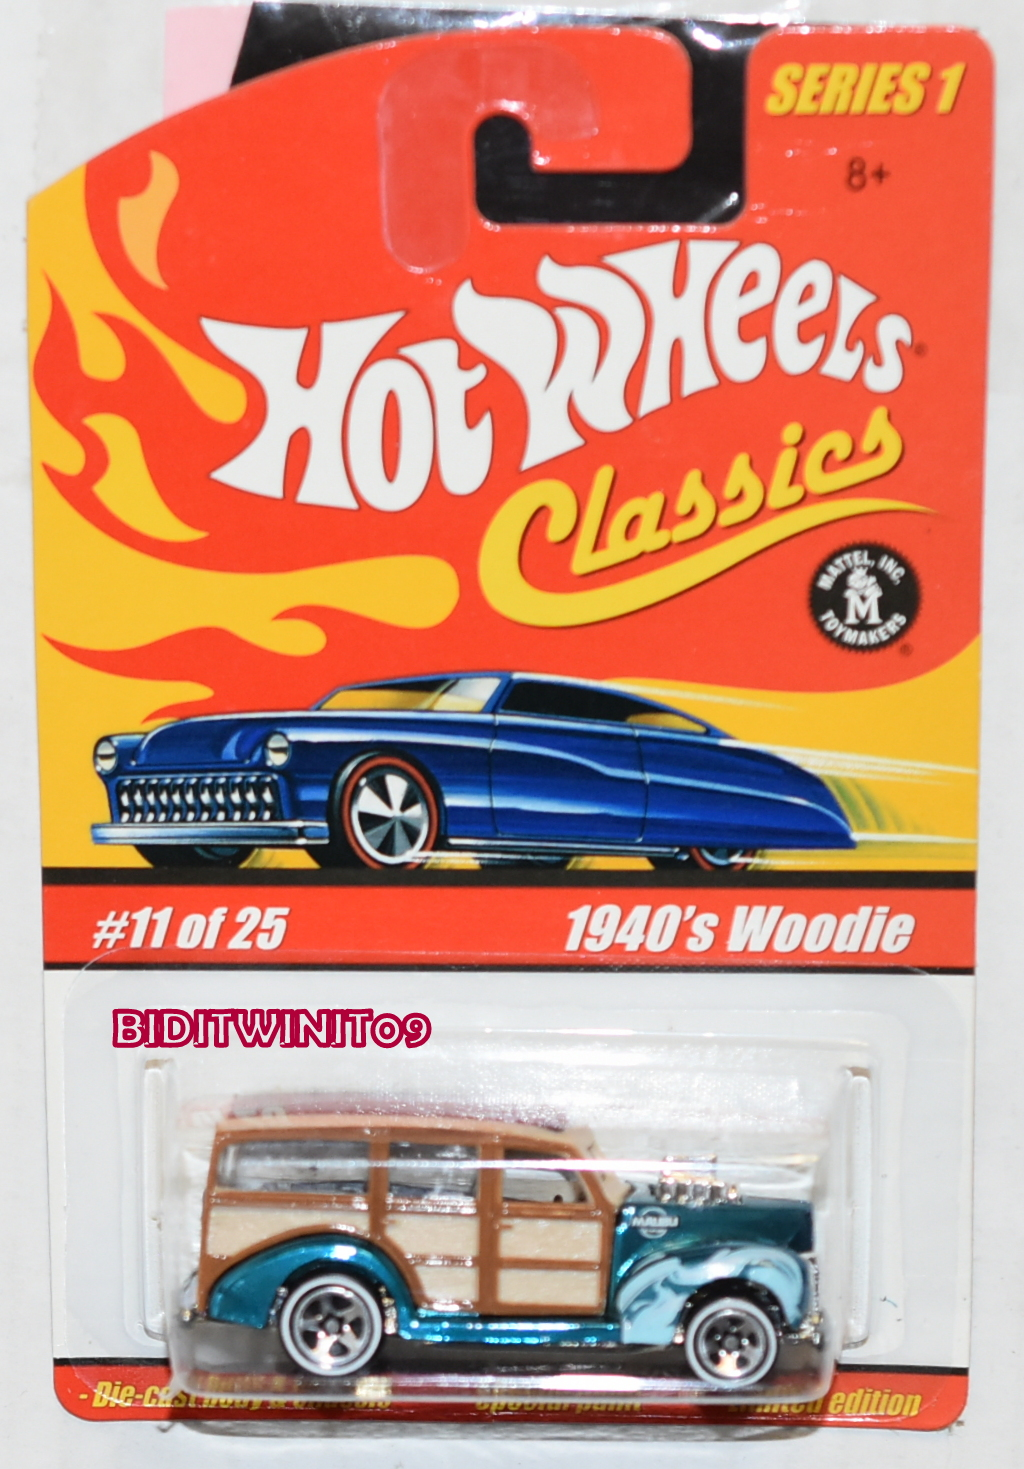 HOT WHEELS CLASSICS SERIES 1 #11/25 1940's WOODIE TURQUOISE E+